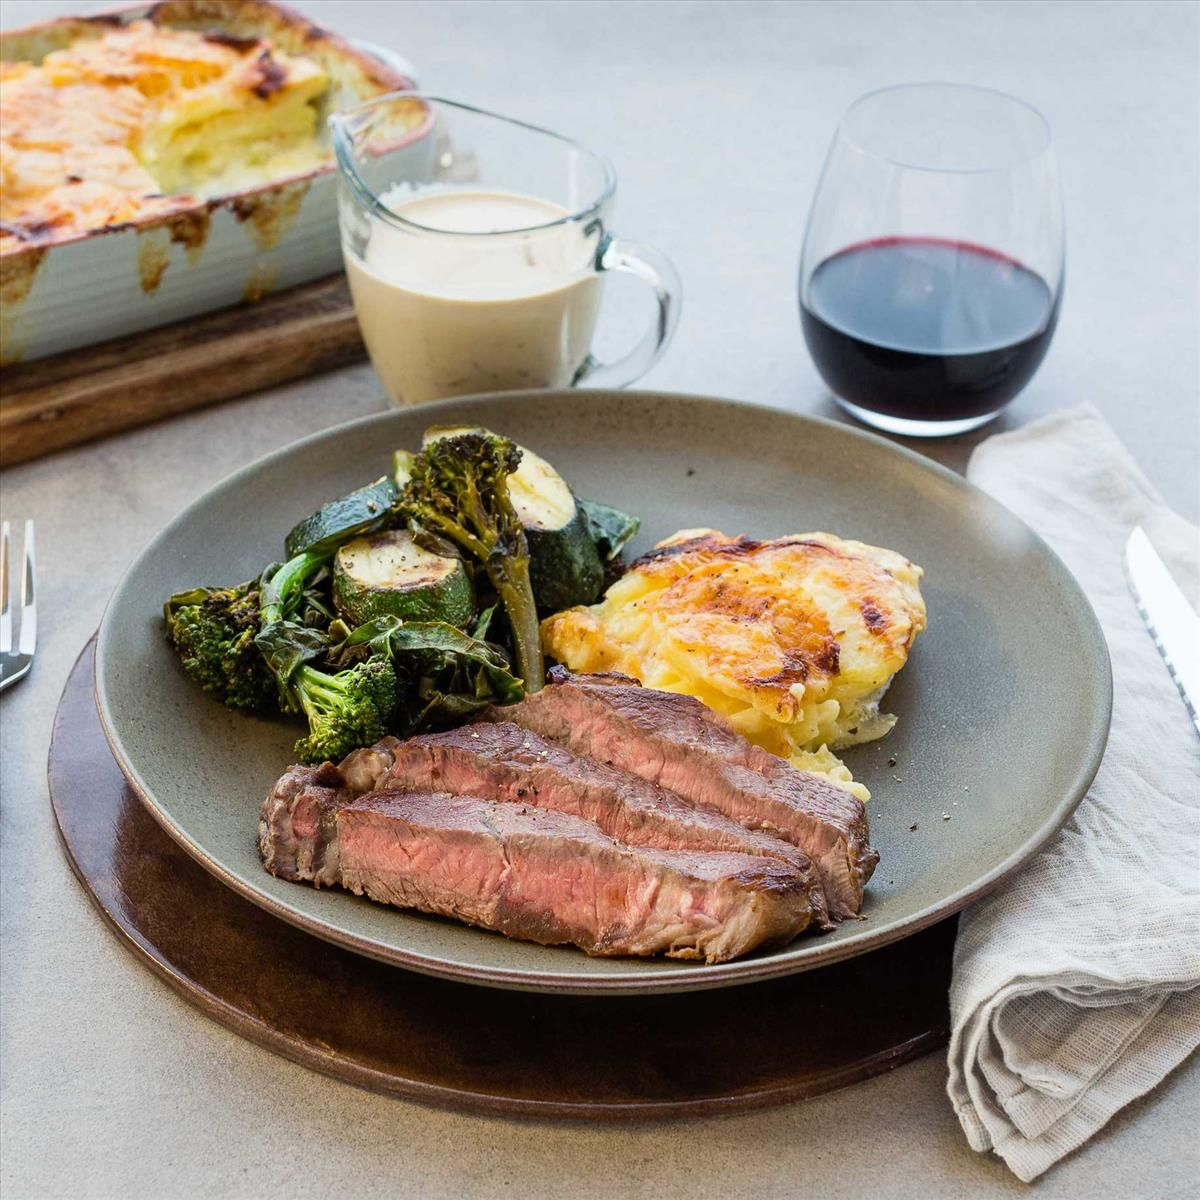 Steak with Green Peppercorn Sauce and Gratin Dauphinois